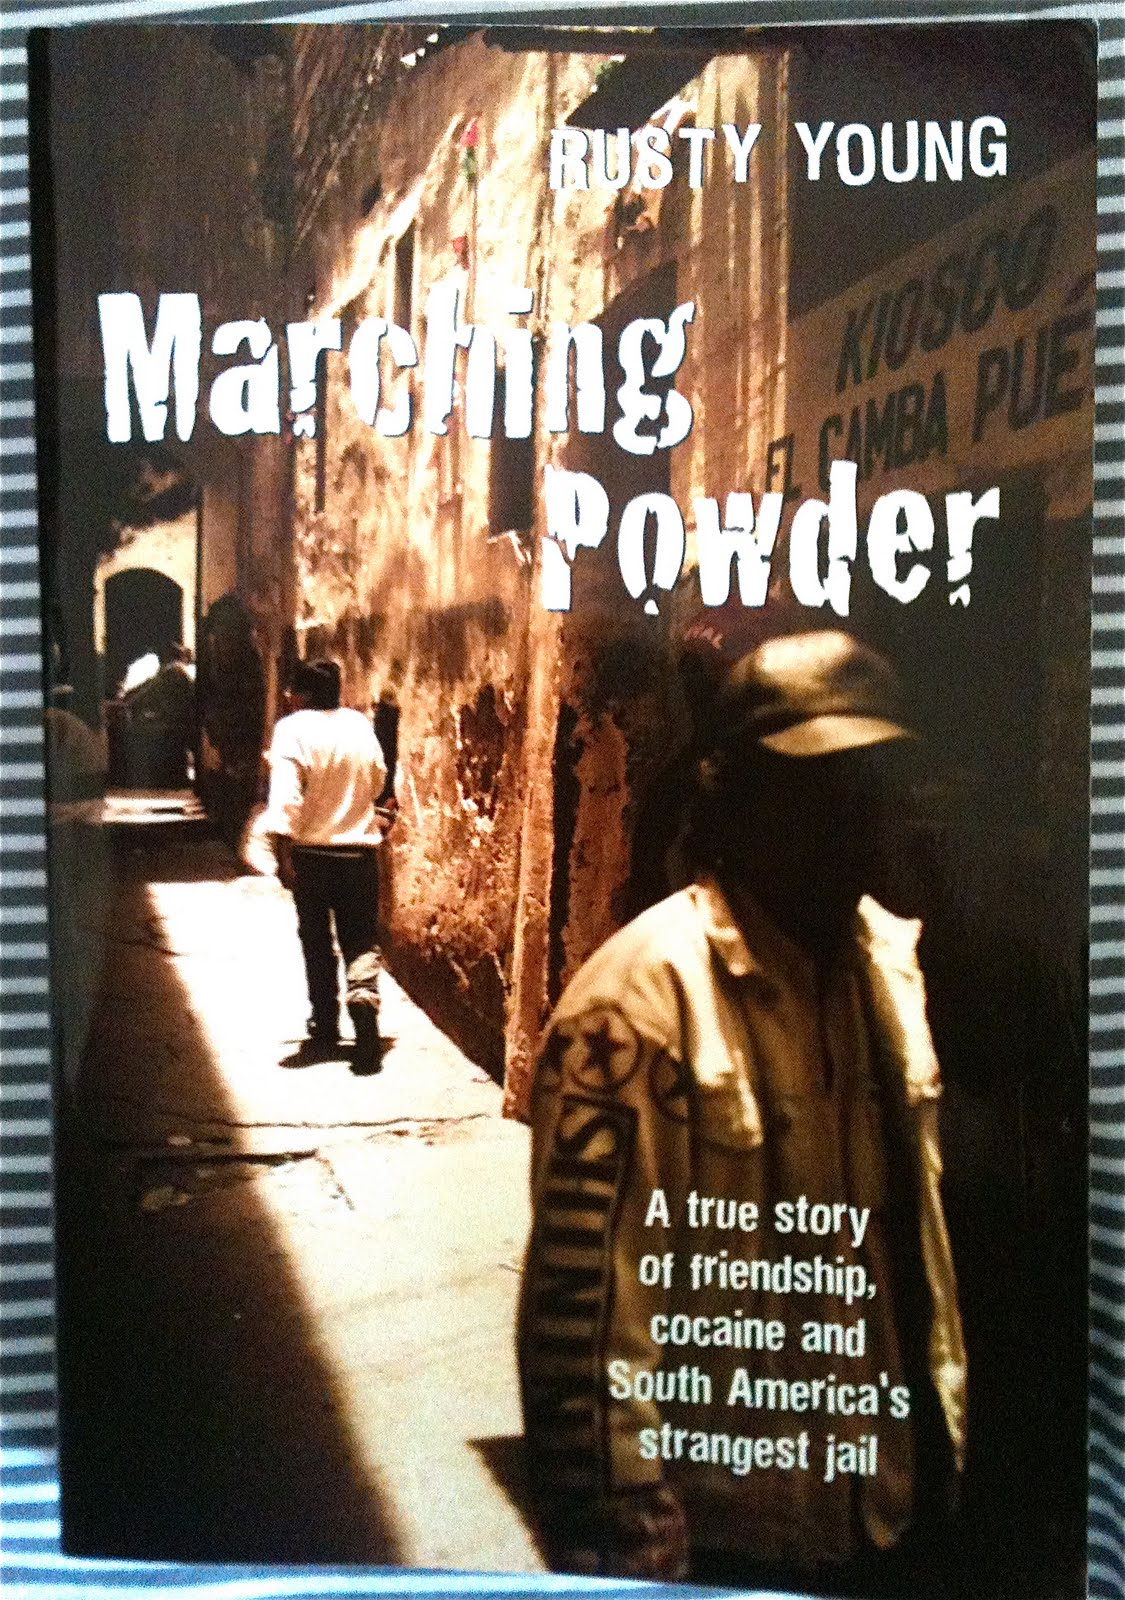 Marching powder rusty young ebook